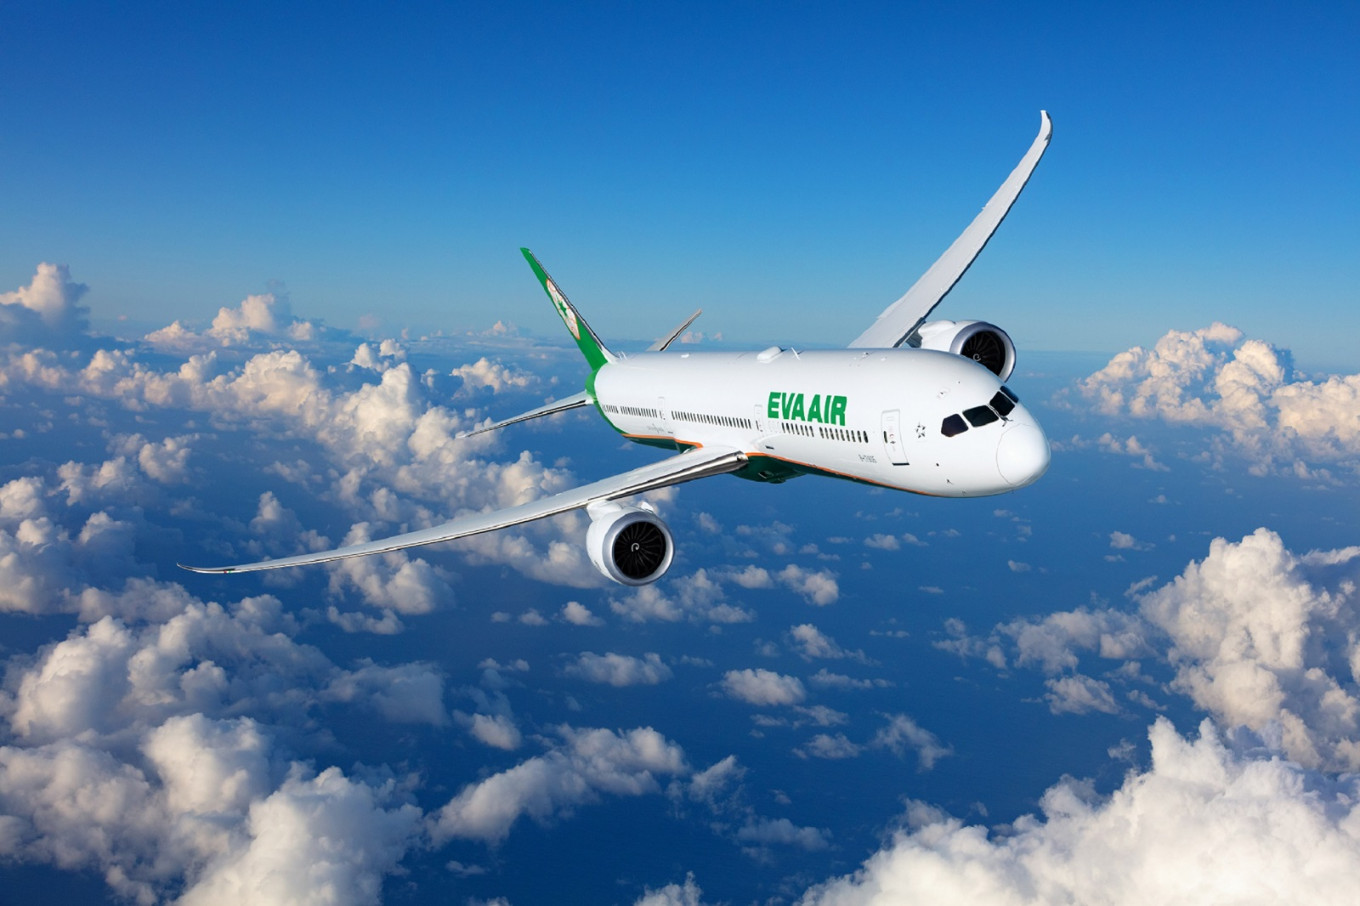 EVA Air maintains position among world's safest airlines